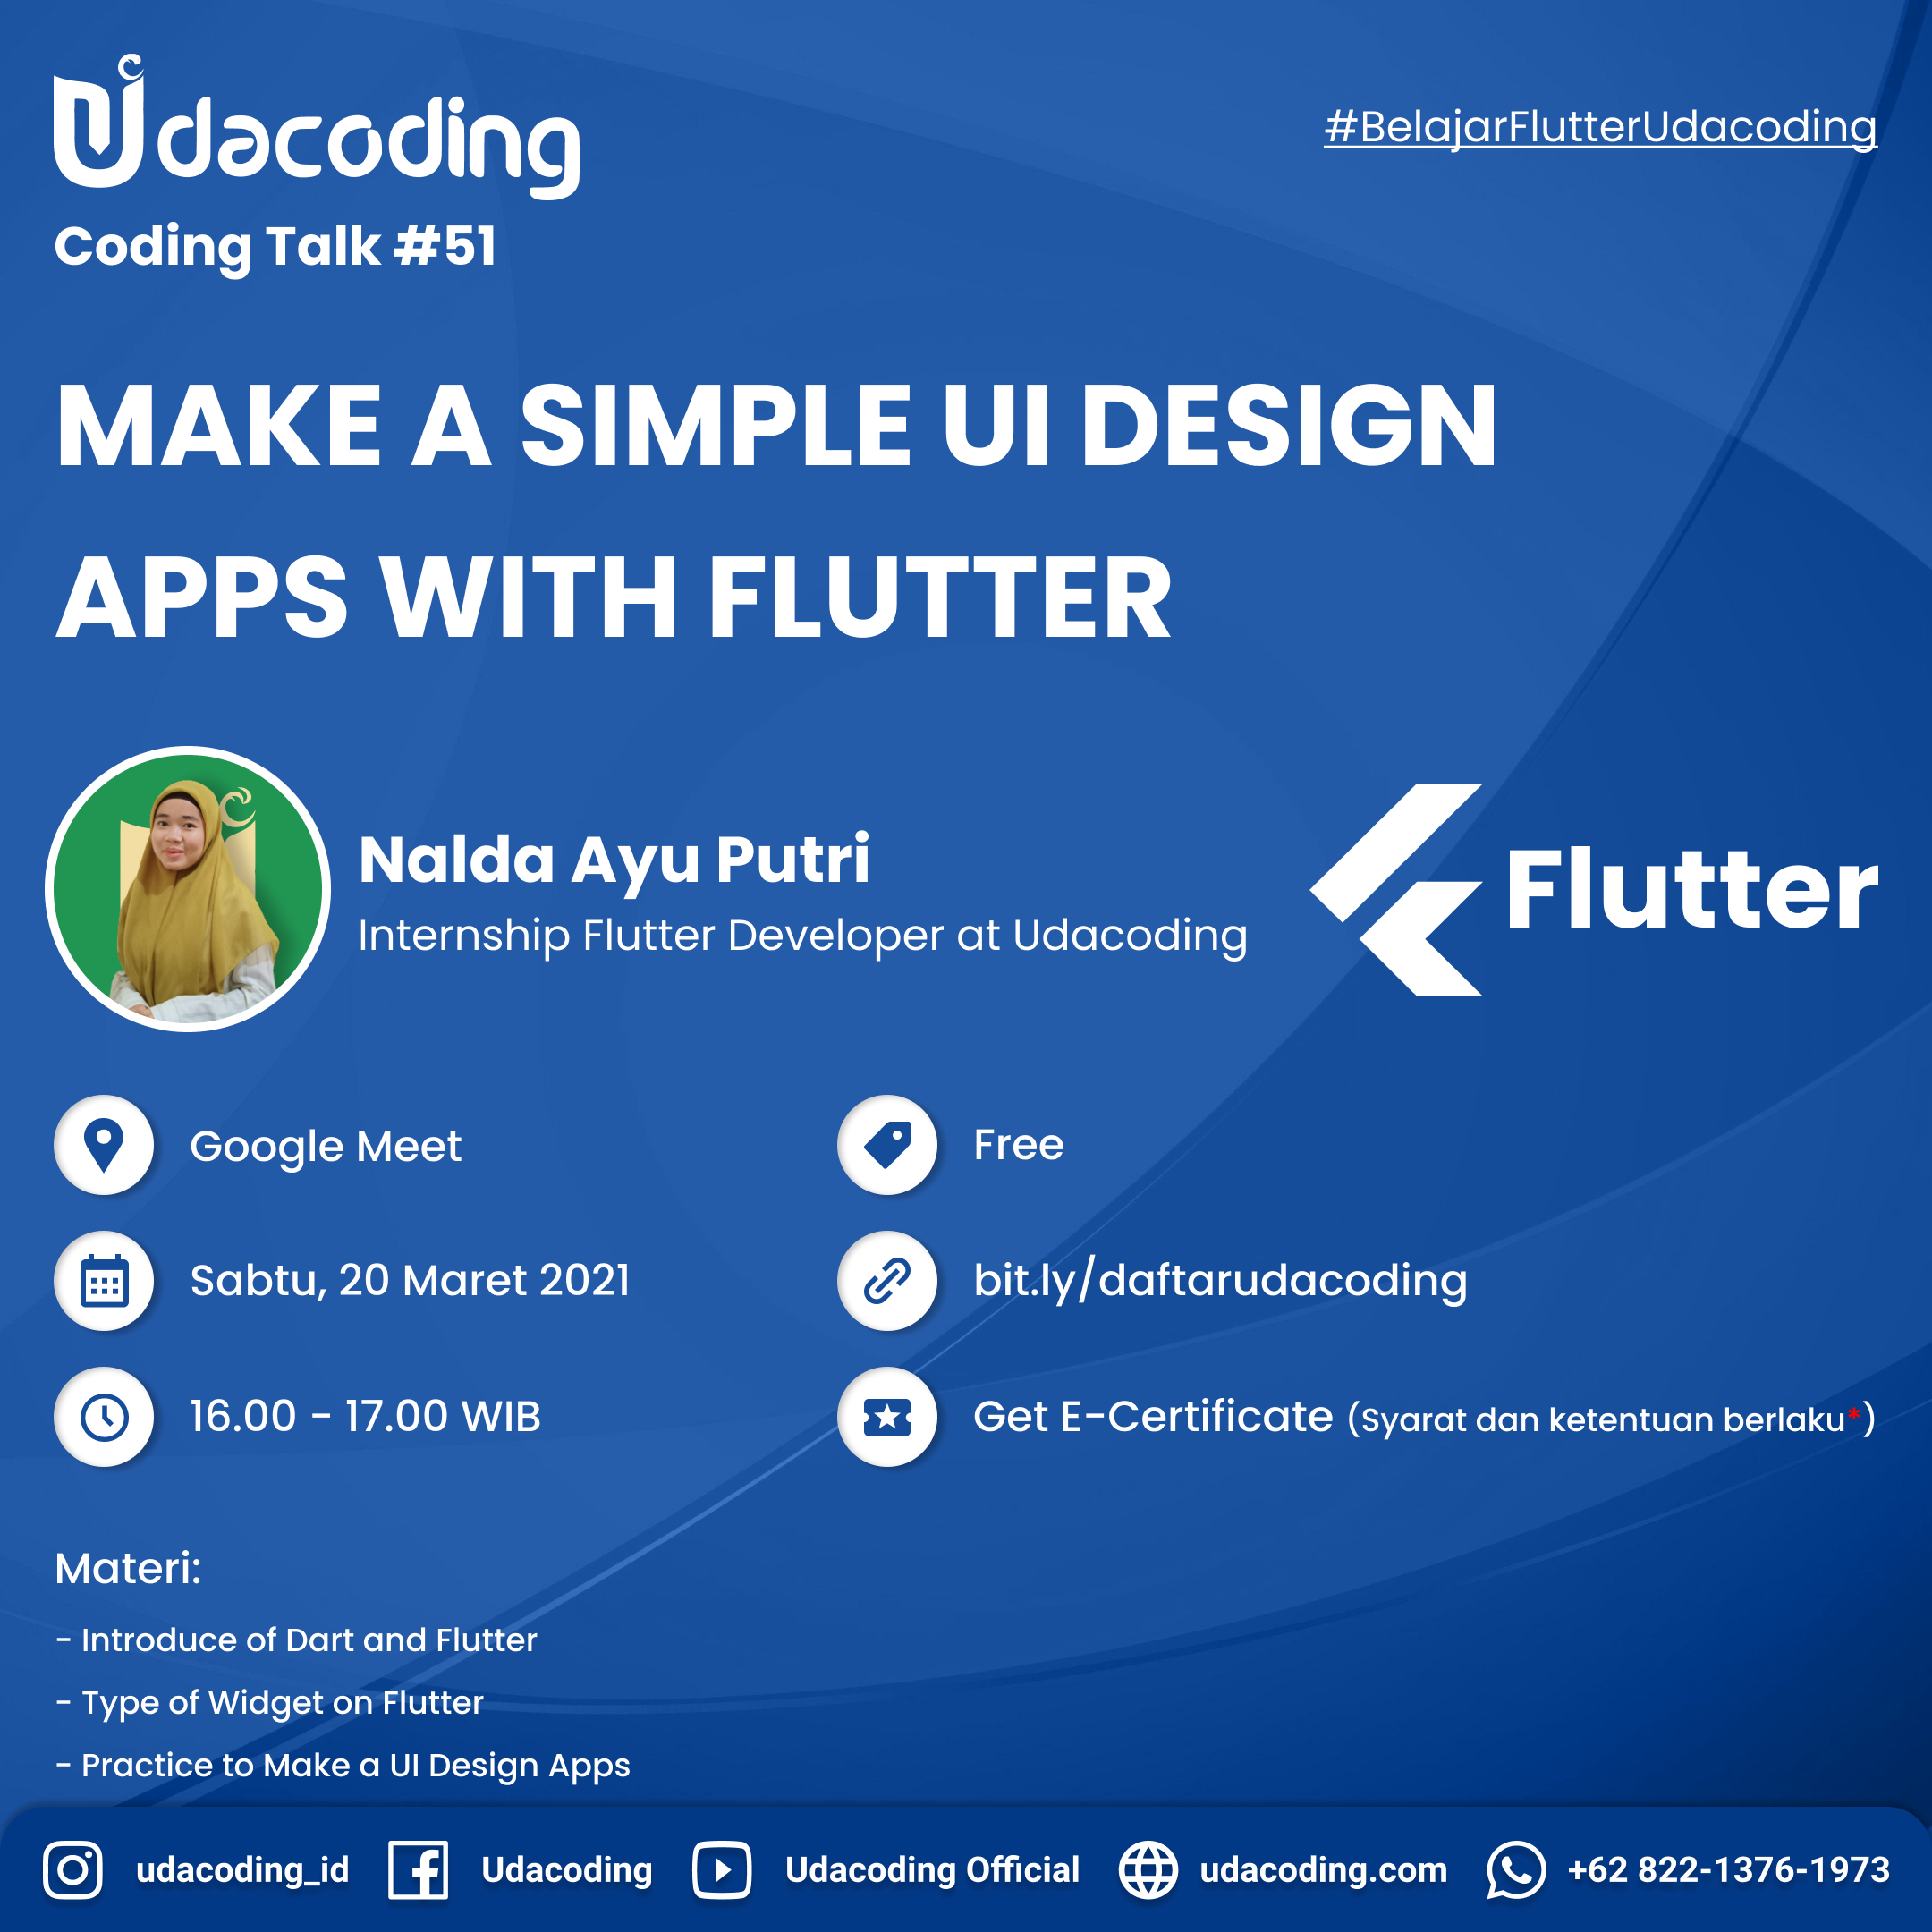 Make a Simple UI Design Apps with Flutter